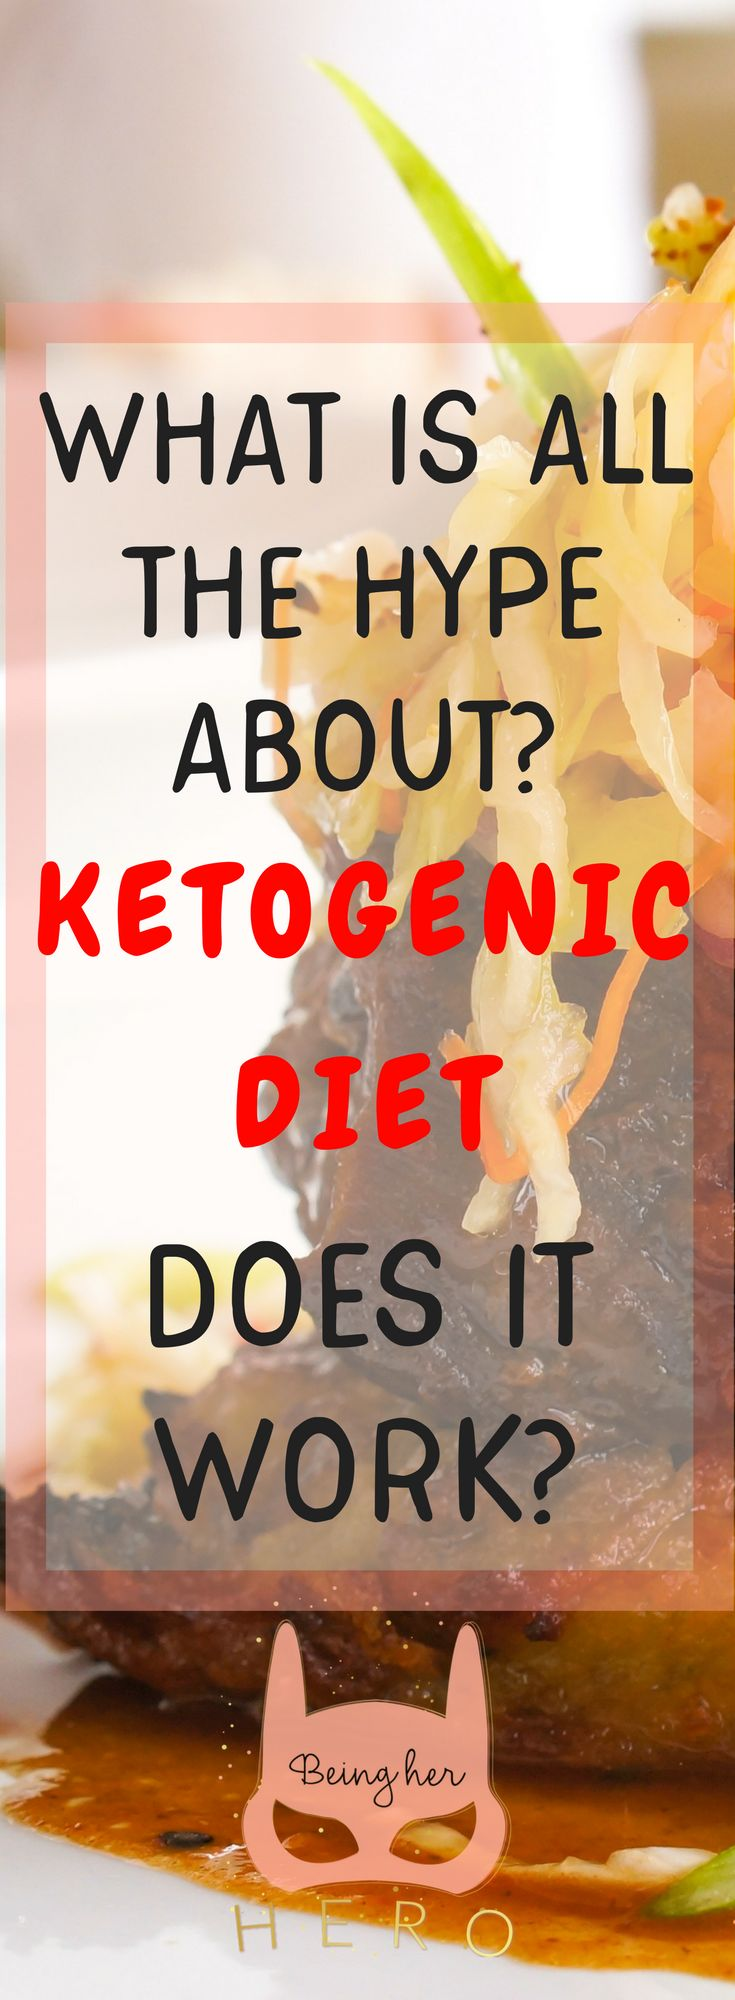 The Ketogenic diet is also known as the low-carb diet. This type of diet is known to bring about a process known as Ketosis, through the lower intake of carbohydrates. #keto #ketogenic #ketogeniclifestyle #ketolifestyle #lchf #lowcarb #lowcarbdiet #lowcarbhighfat #lowcarblifestyle